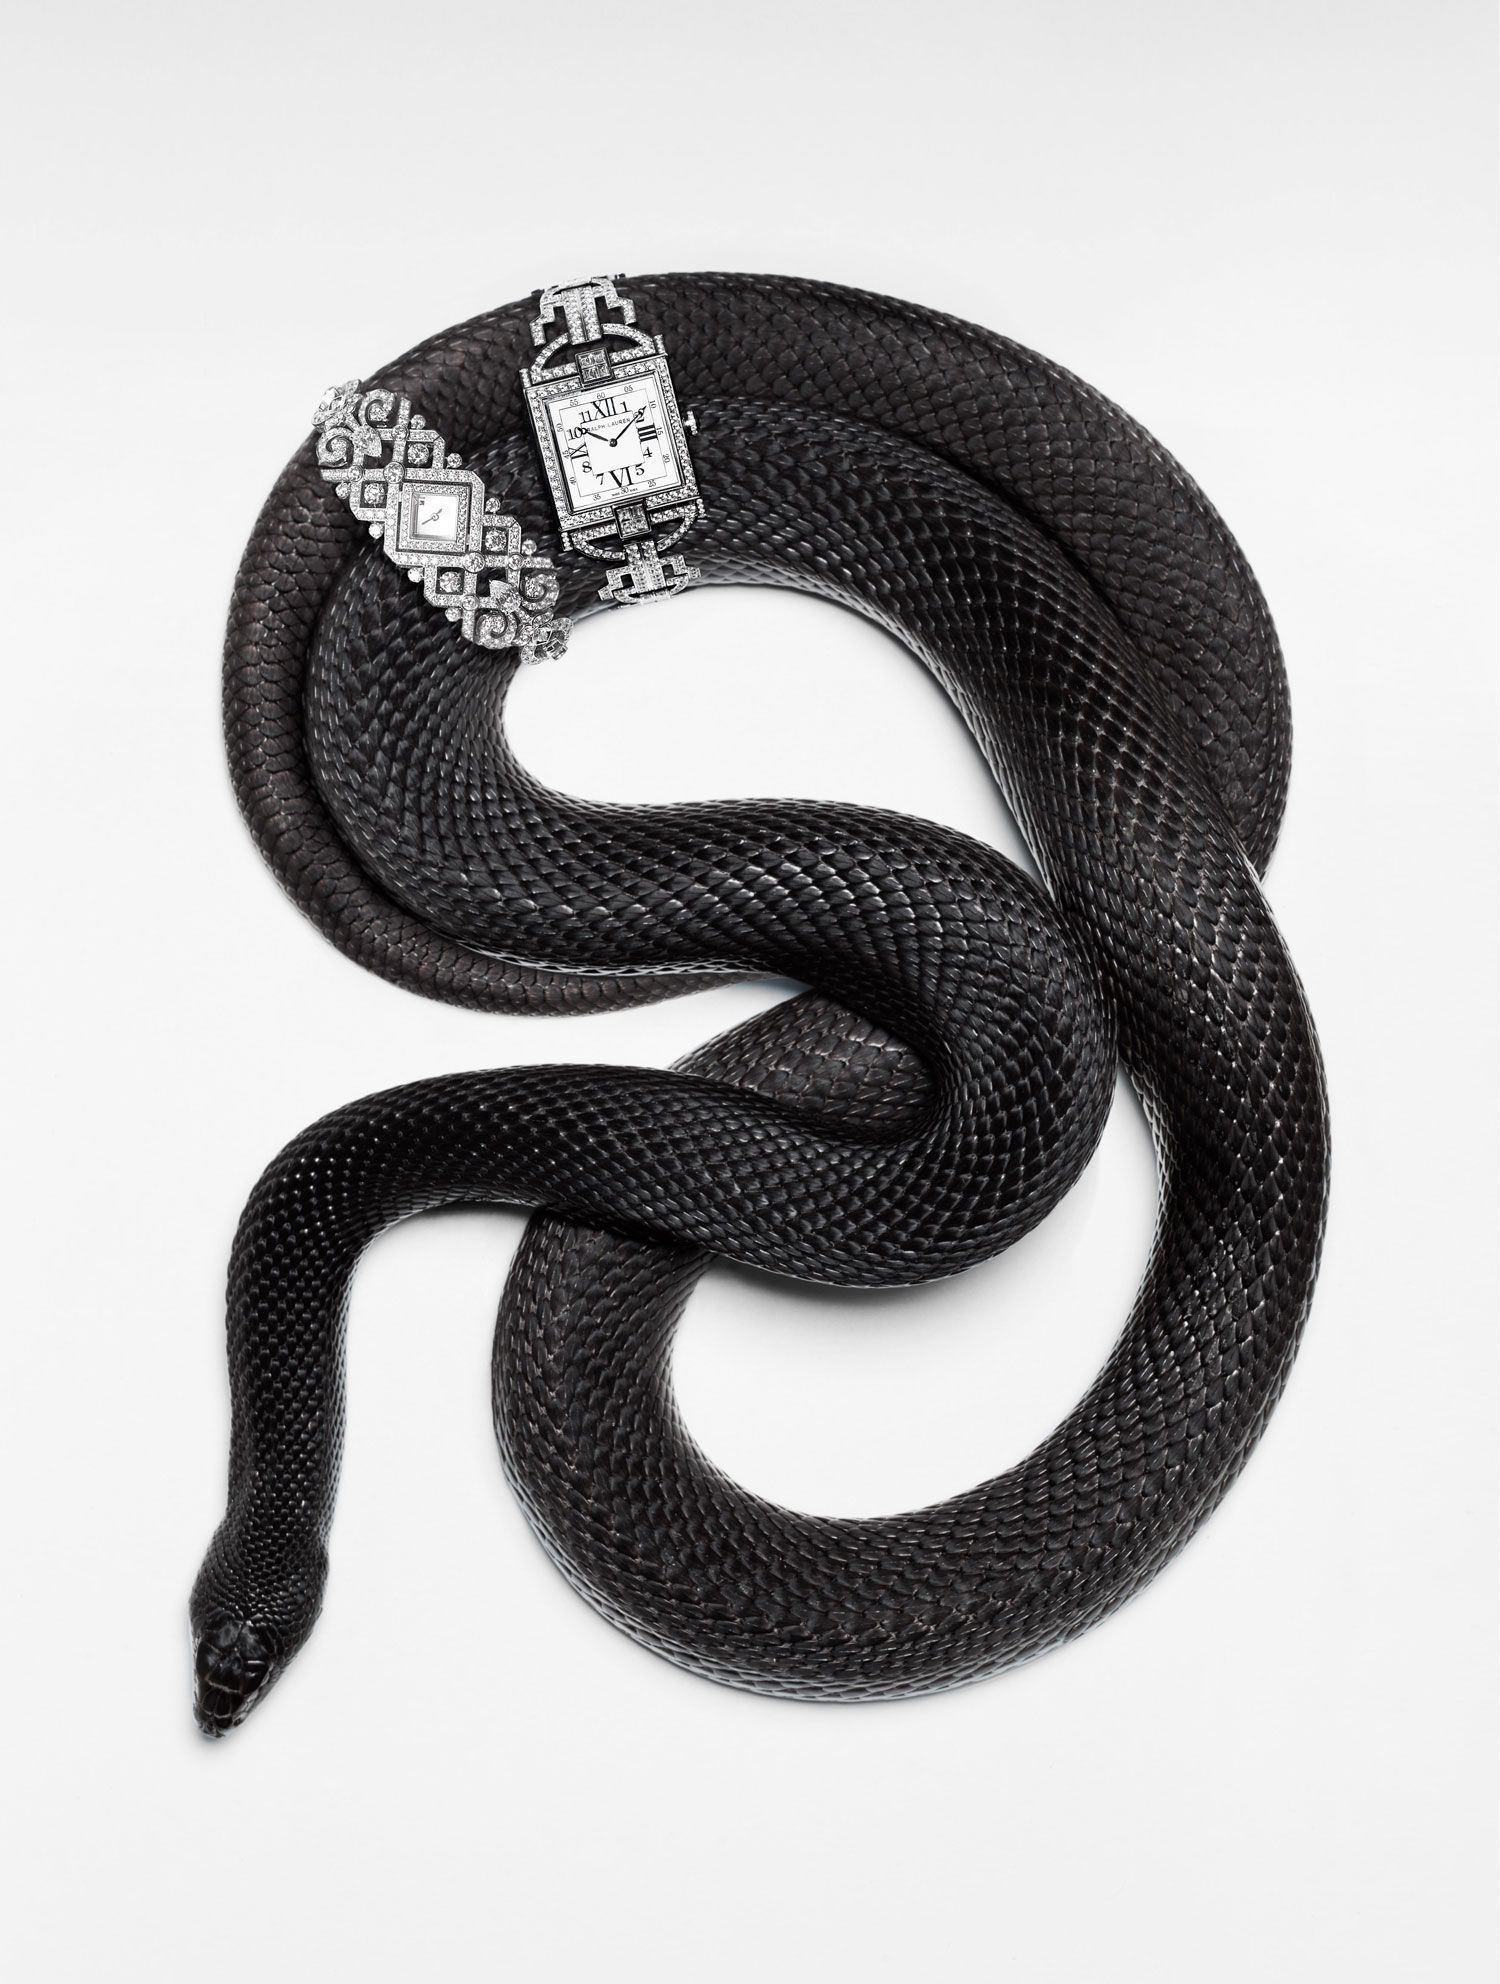 torkil gudnason animal snake watches